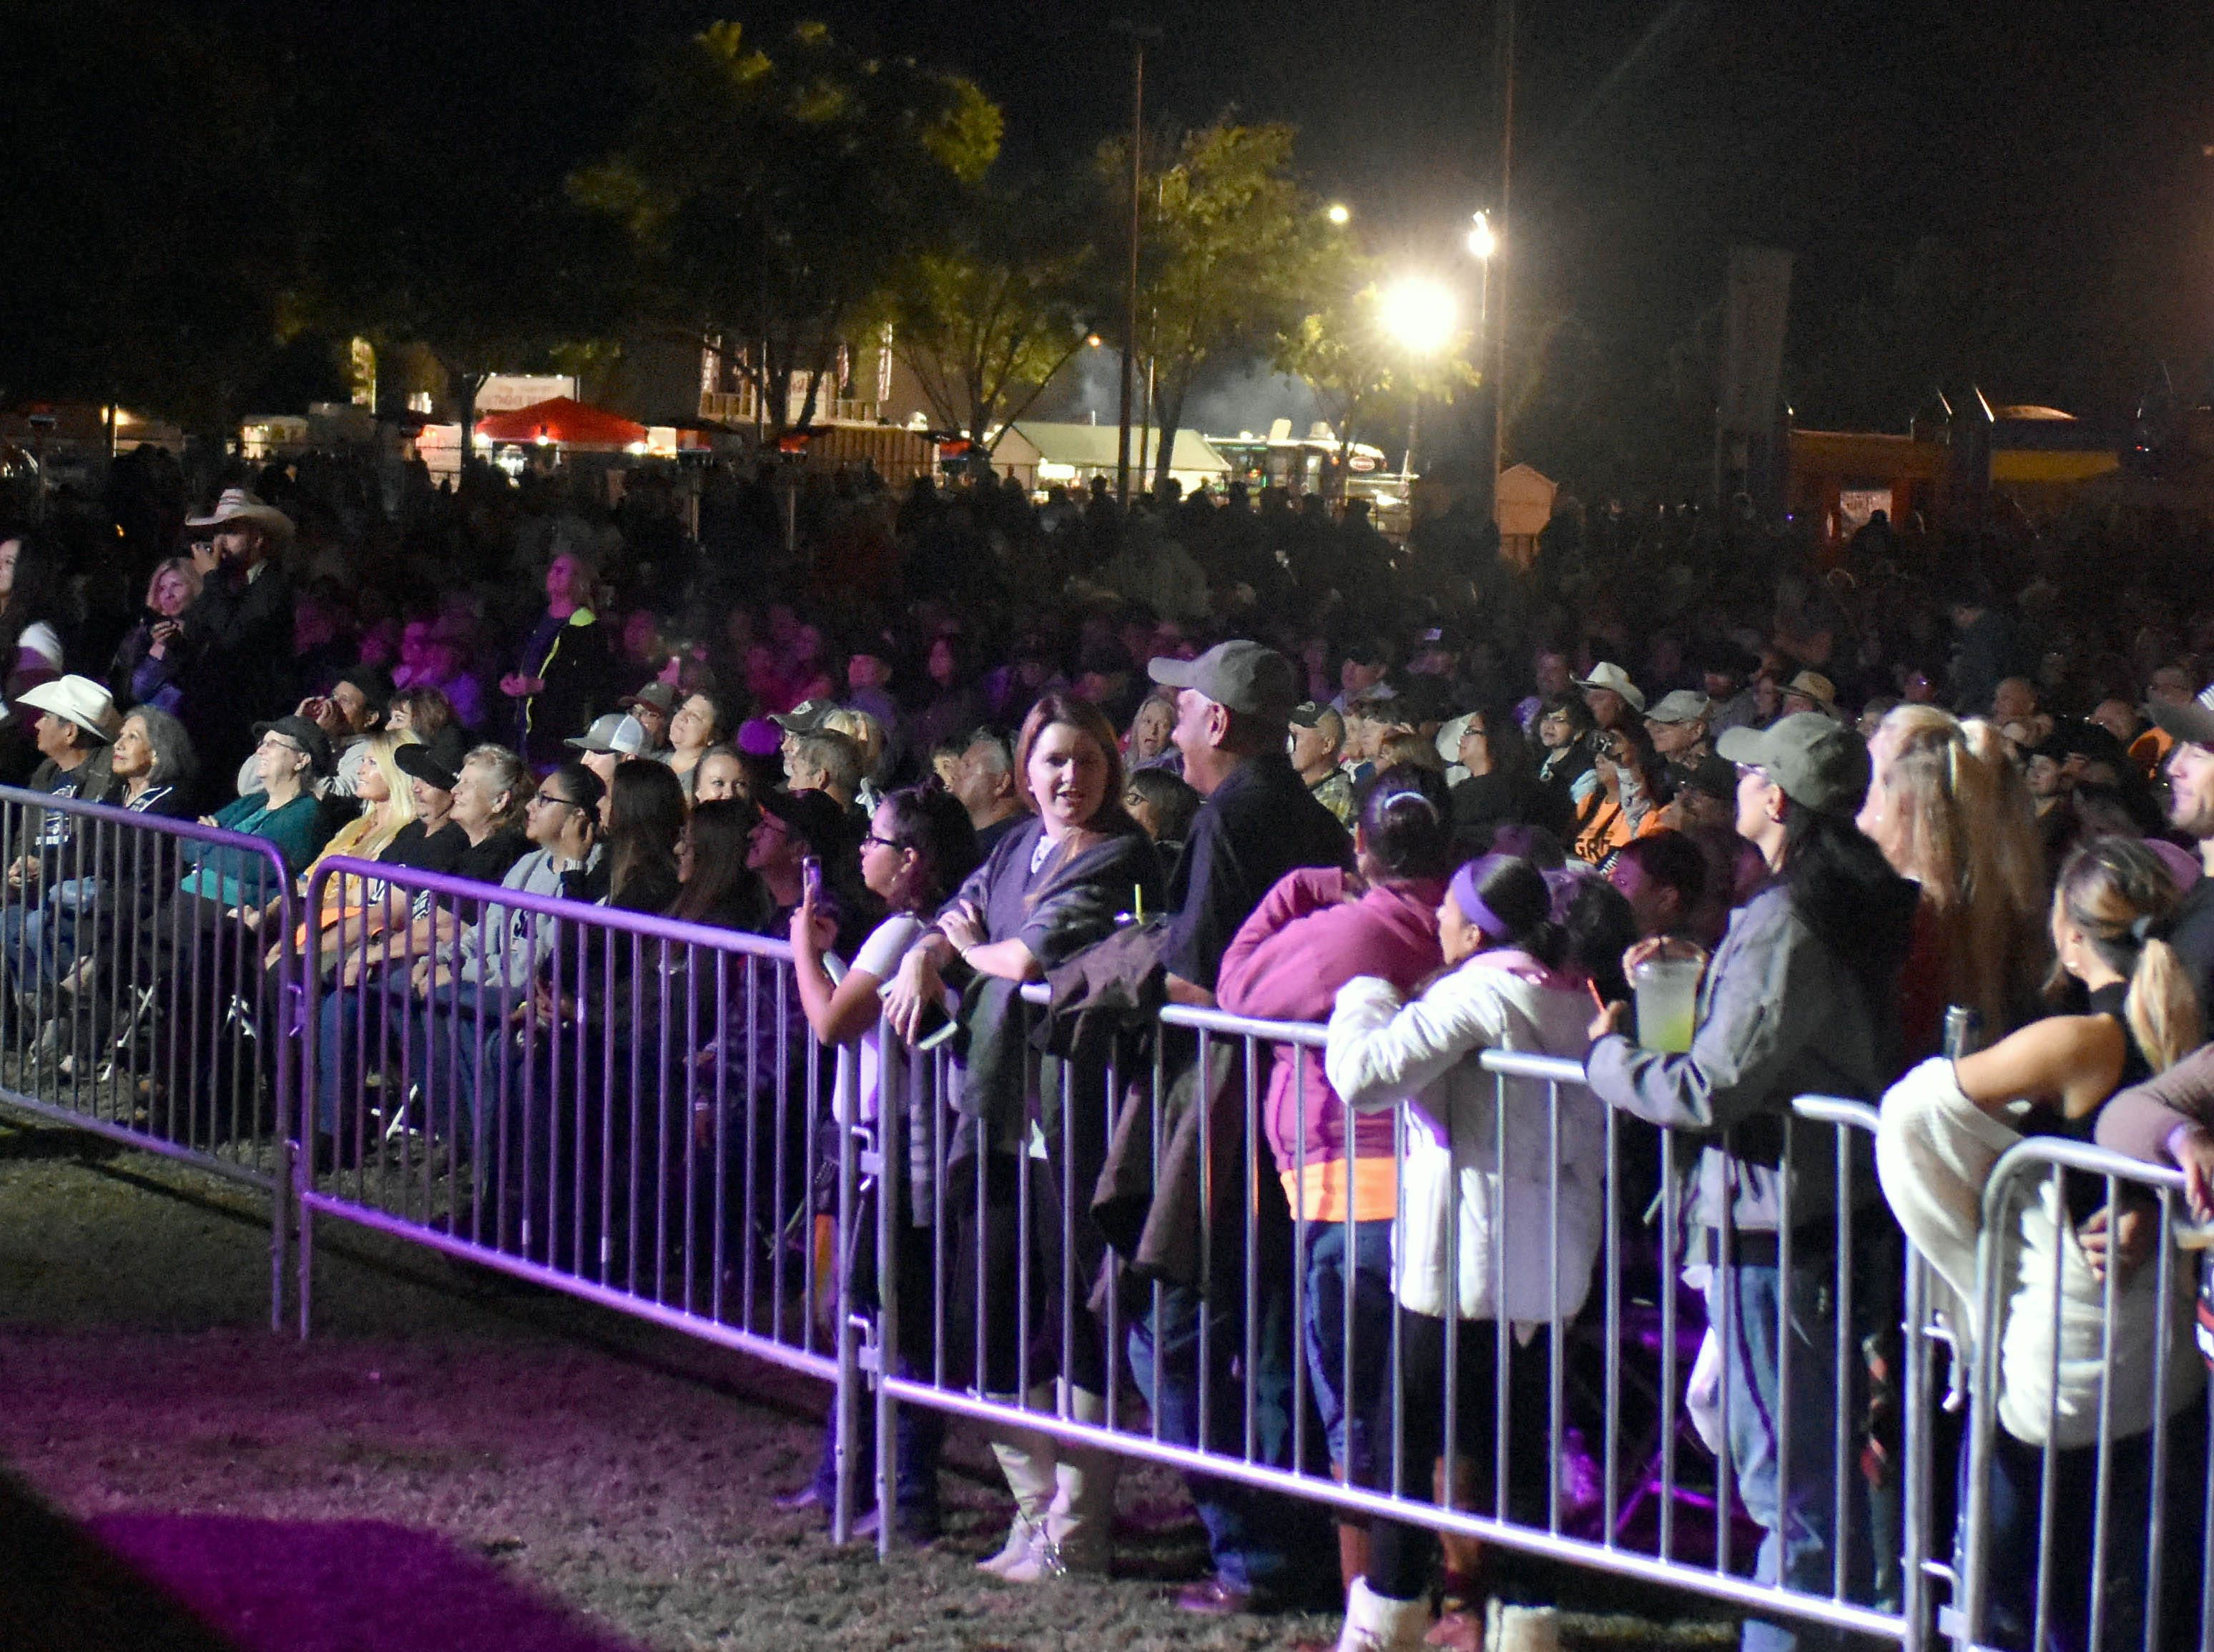 A crowd gathers to Frankie Ballard just before Dwight Yoakam hit the Main Stage at the Las Cruces Country Music Festival on Friday, Oct. 19, 2018.